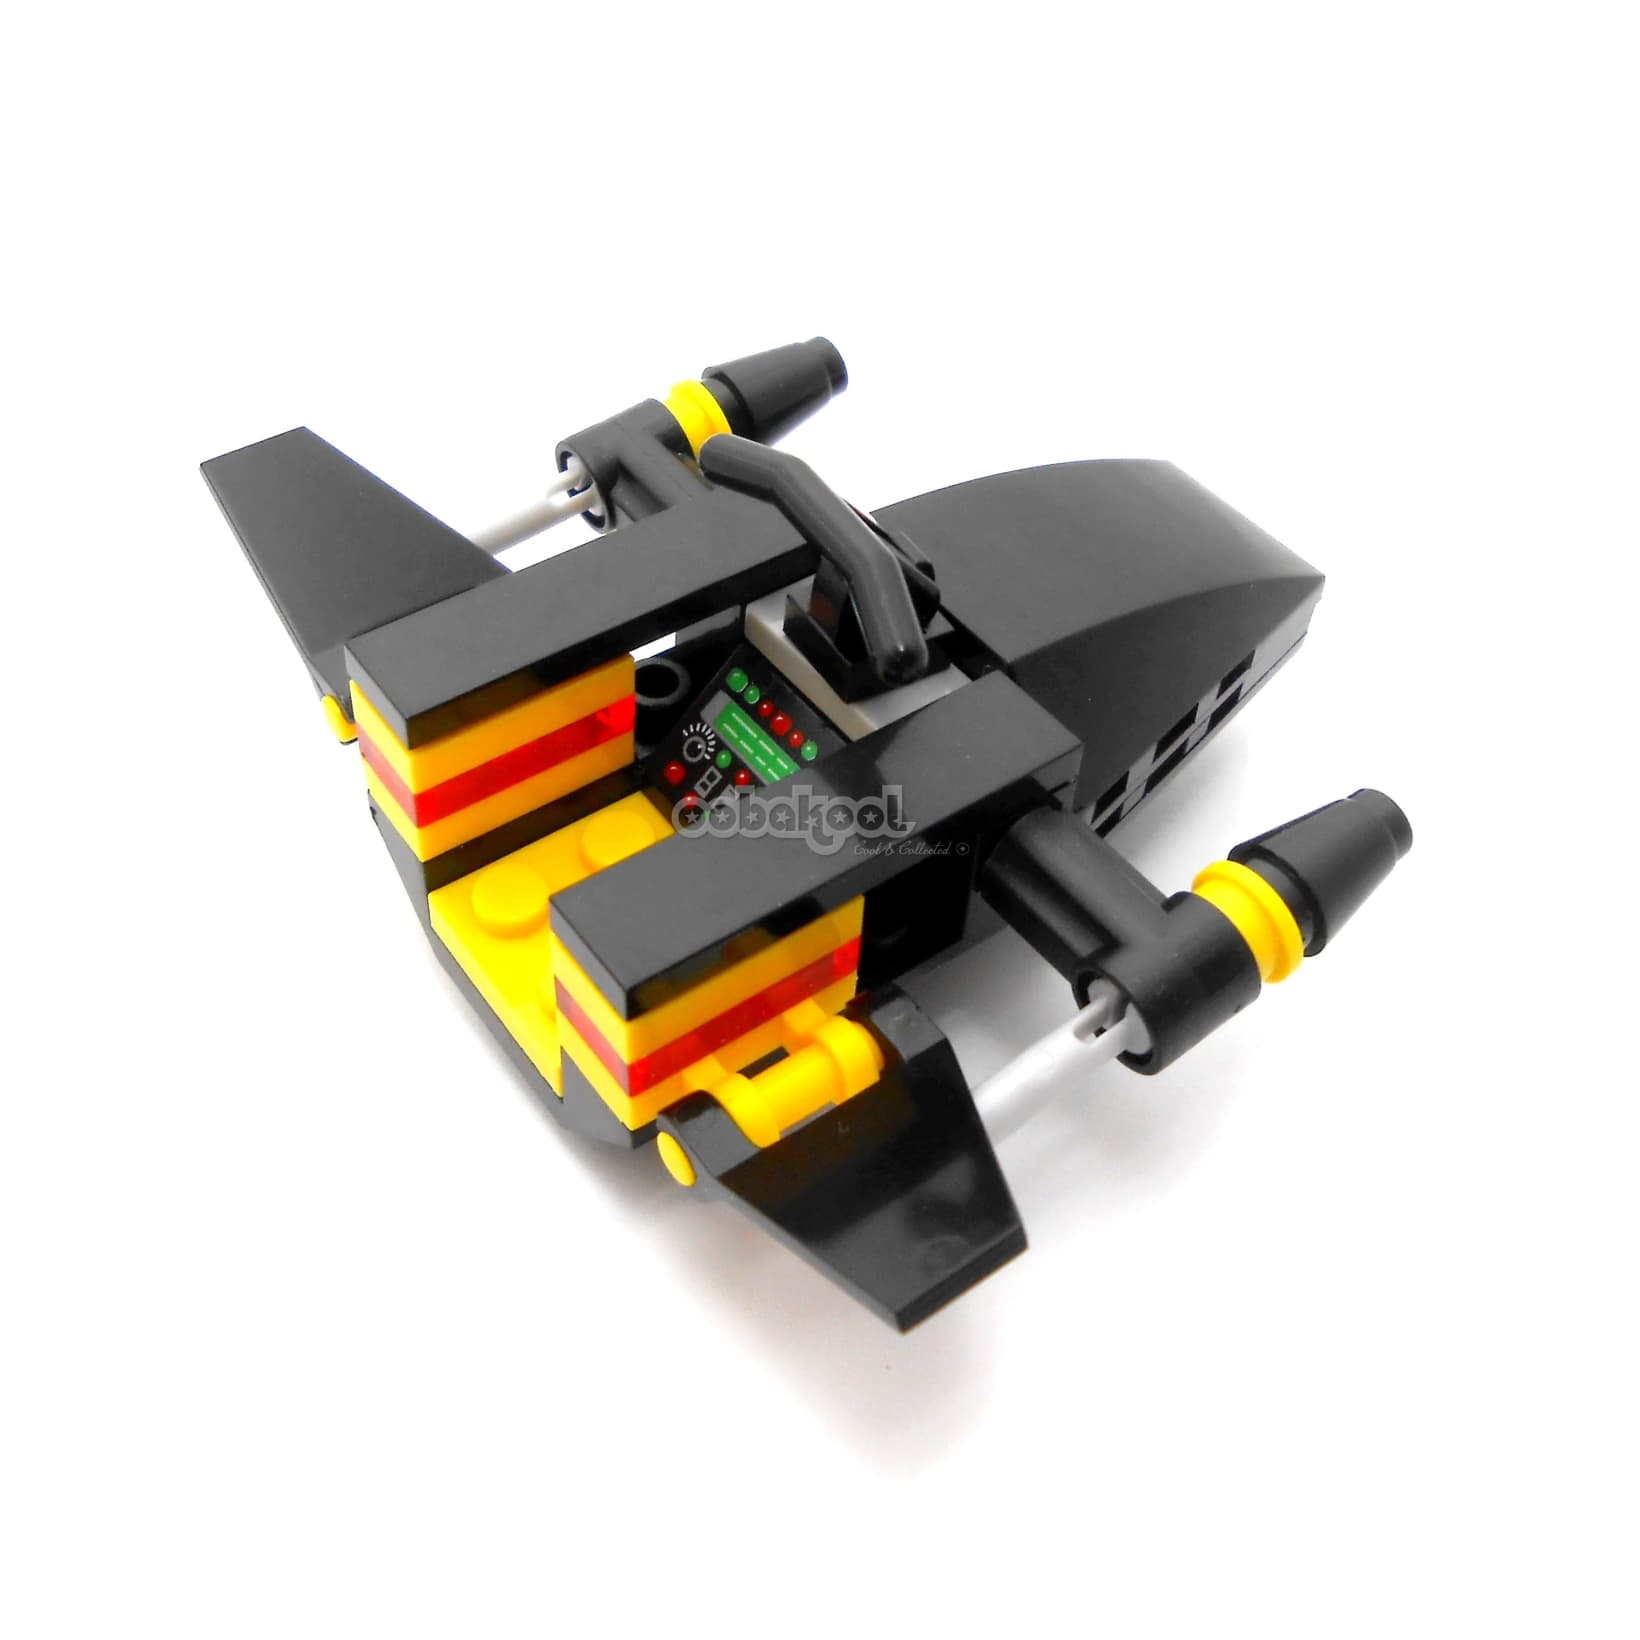 Avengers / Iron Man Speedster Jet Oobakool Minifigure Vehicle Vehicles